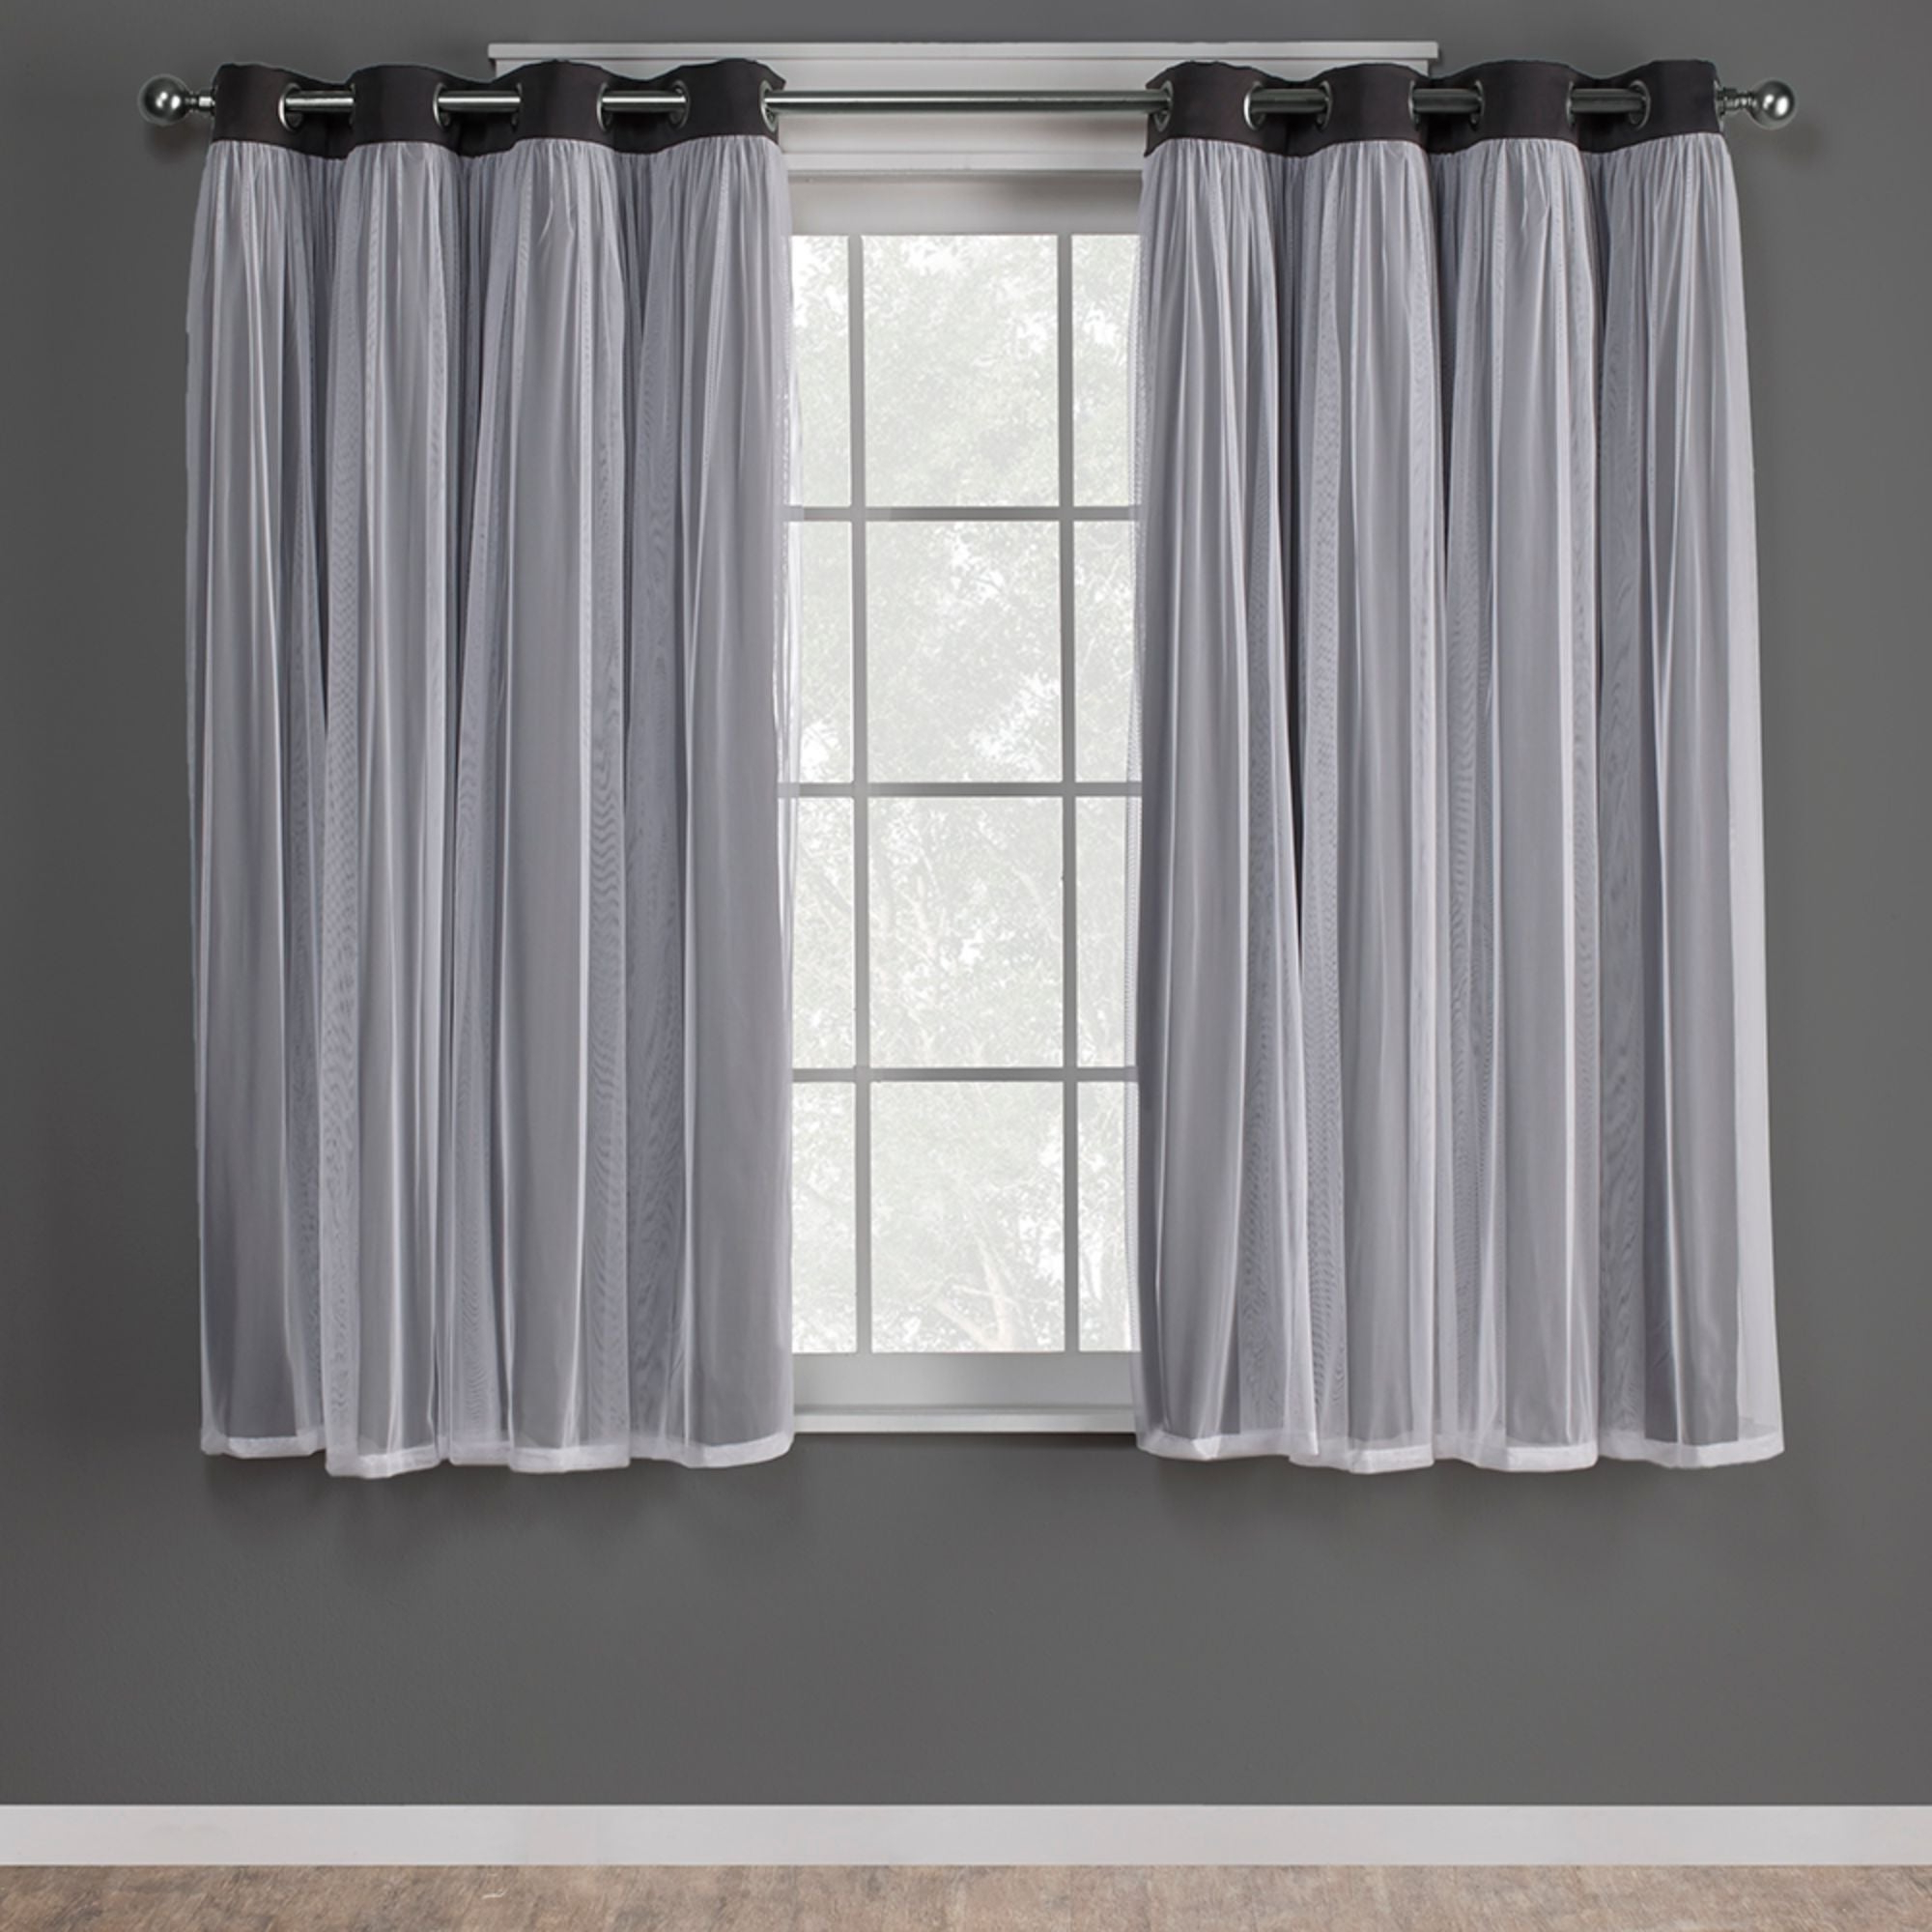 Overstock Shopping – The Best Deals On As Is Inside Catarina Layered Curtain Panel Pairs With Grommet Top (View 4 of 20)